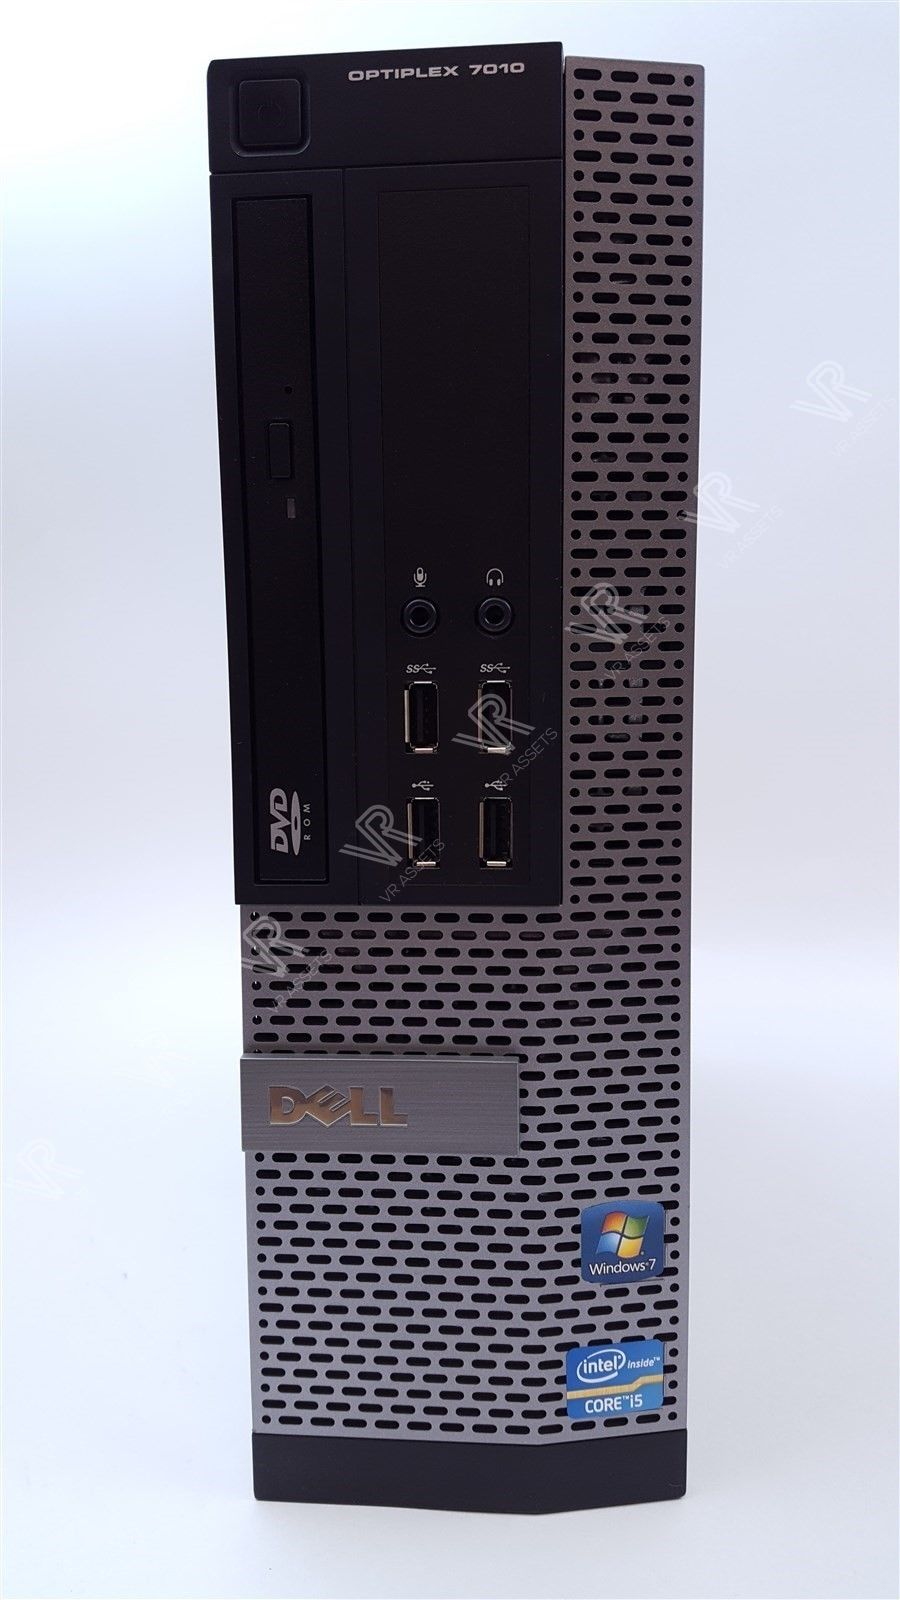 Dell Optiplex 7010 SFF I5-3570 Quad Core 4Gb 250Gb DVDRW Widows 10 Pro Desktop